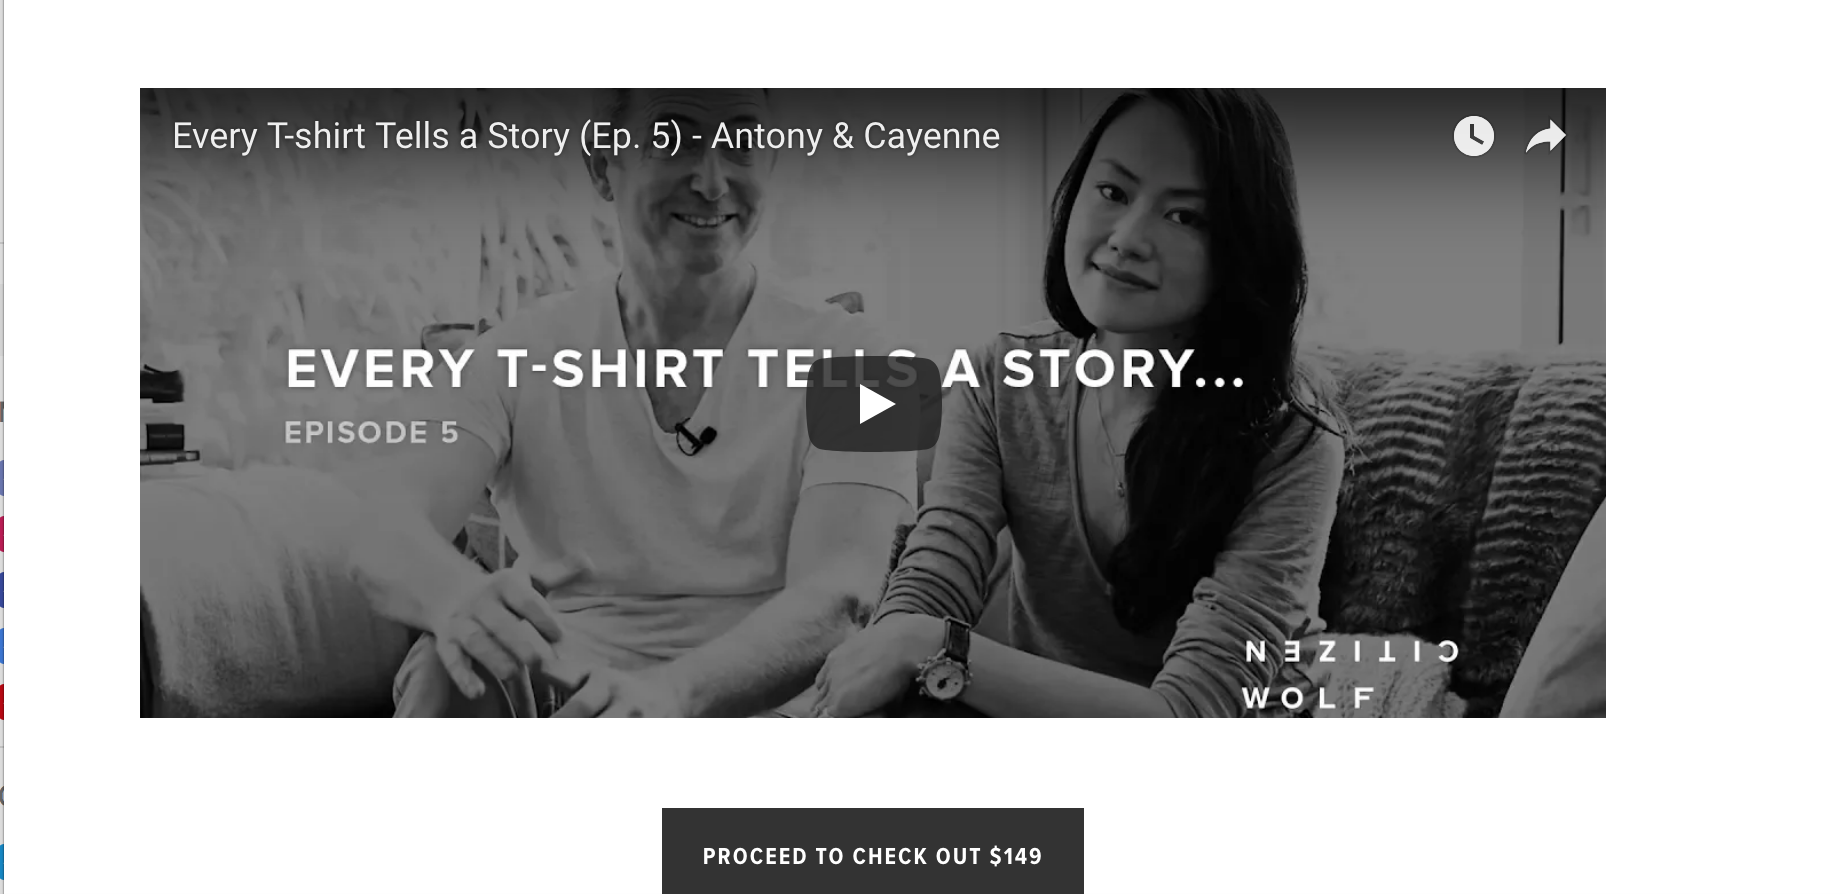 shopify CRO with video social proof